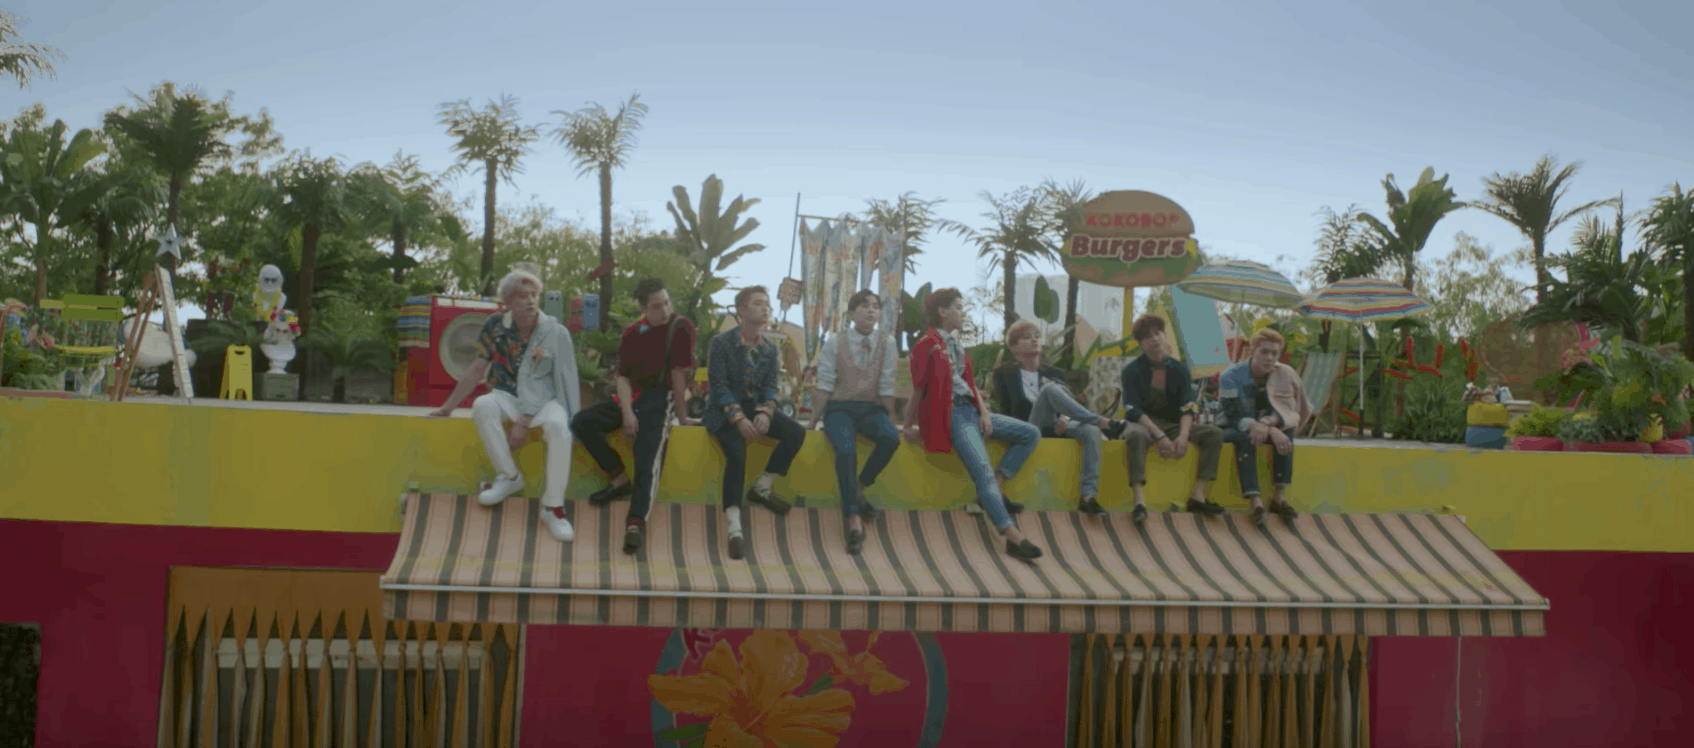 EXO Ko Ko Bop video - The boys sitting on the roof of a burger joint